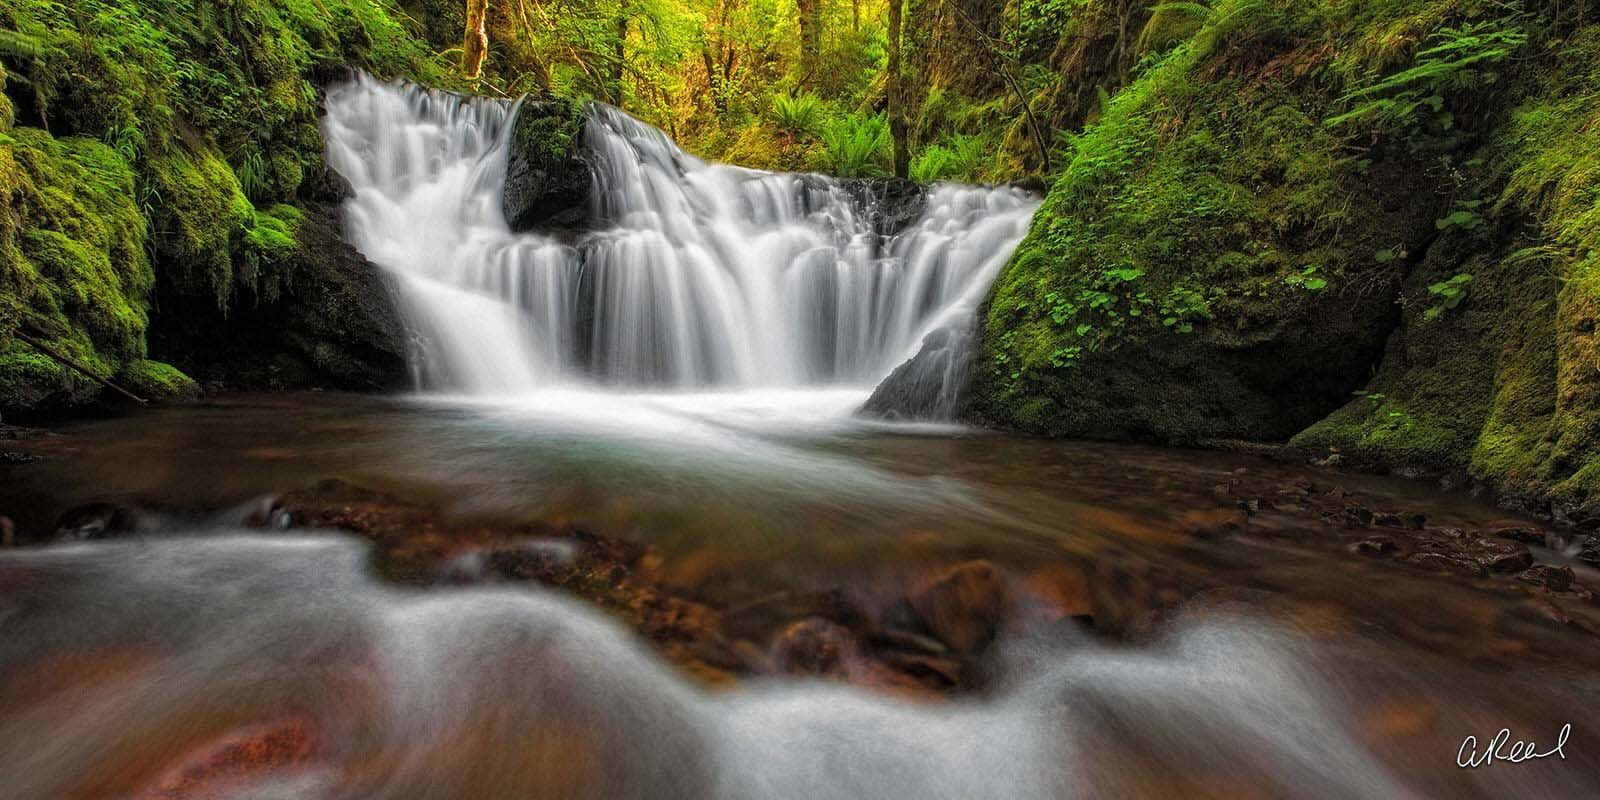 Transform your space with Aaron Reed's luxury fine art photography print, The Wishing Well, from his Panoramic Wall Art collection...